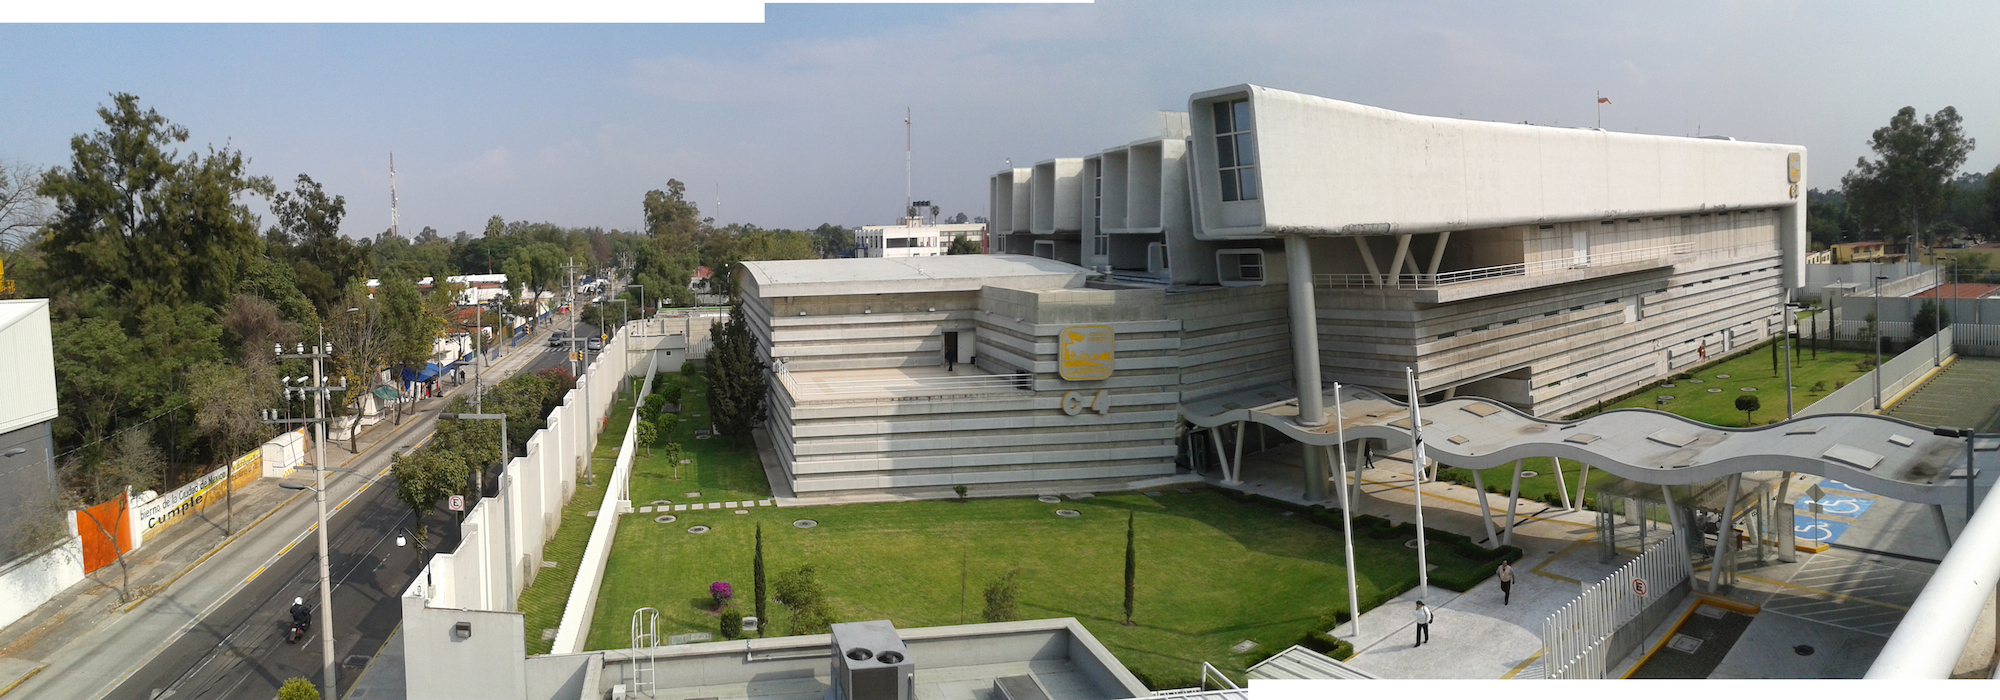 Fig. 3: Panoramic view of the C4i4 from the parking lot rooftop |photo by Paulina V. Pulido